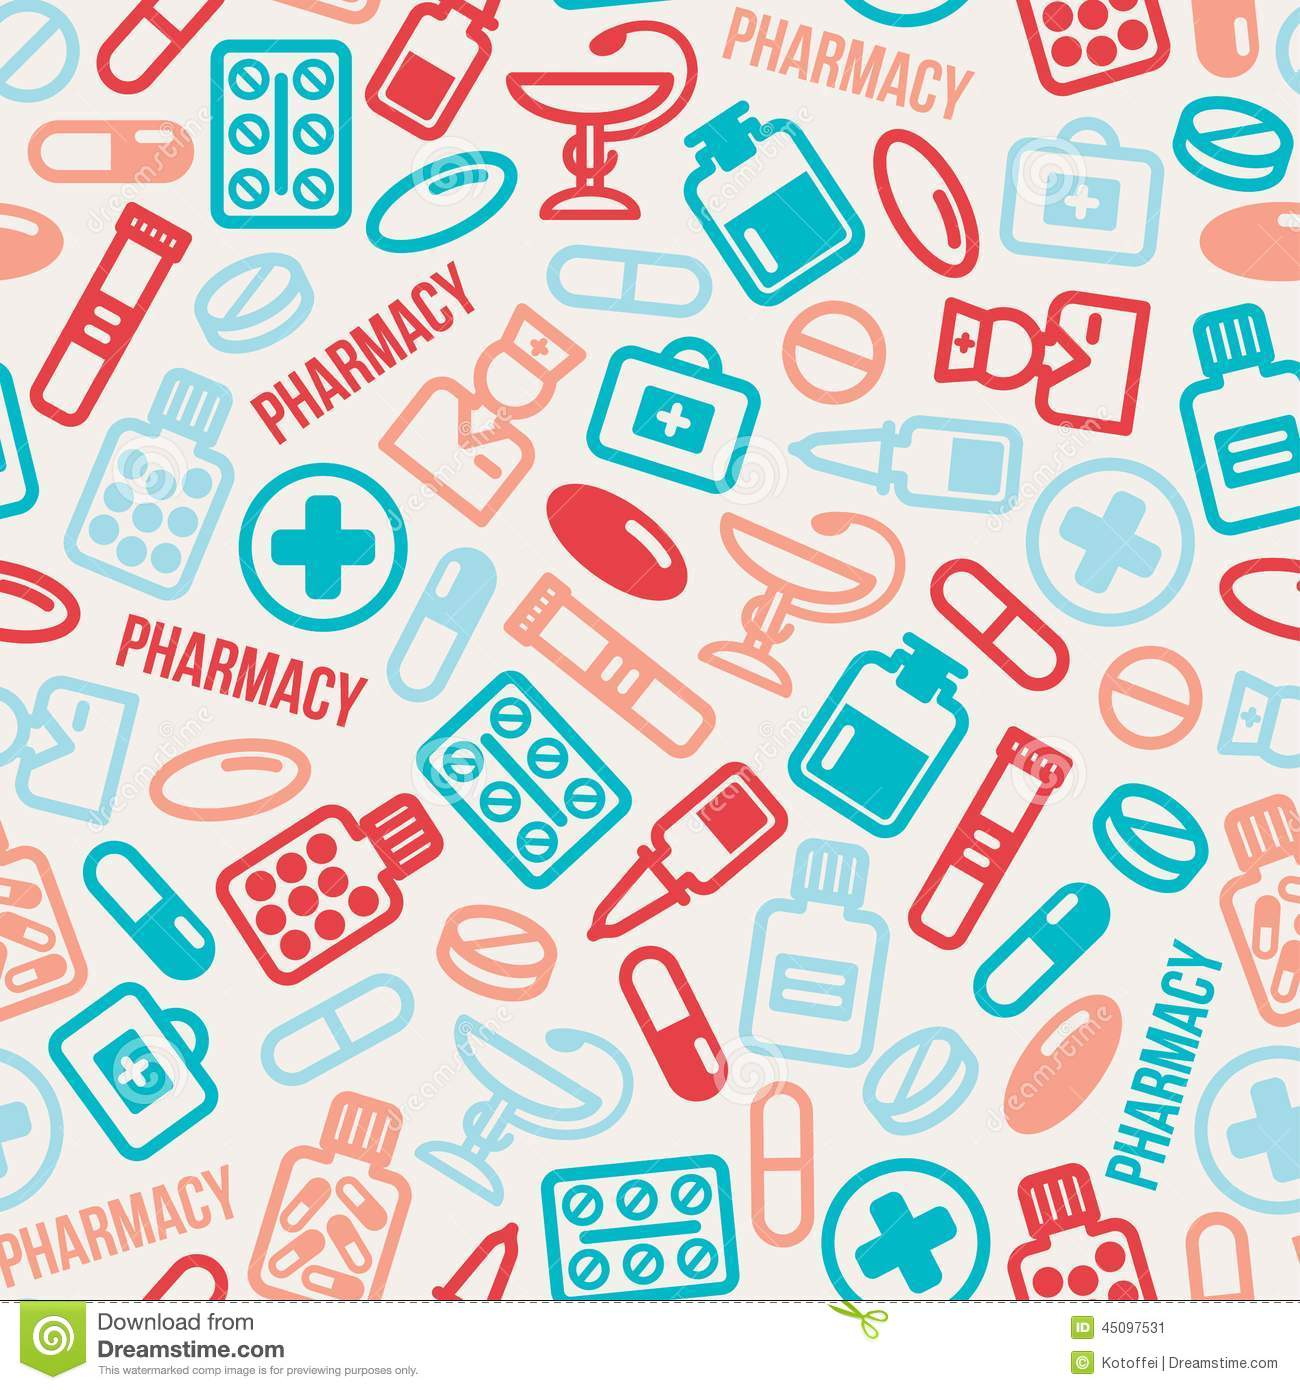 Miller's Pharmacy Waterford Icon Wallpaper 2